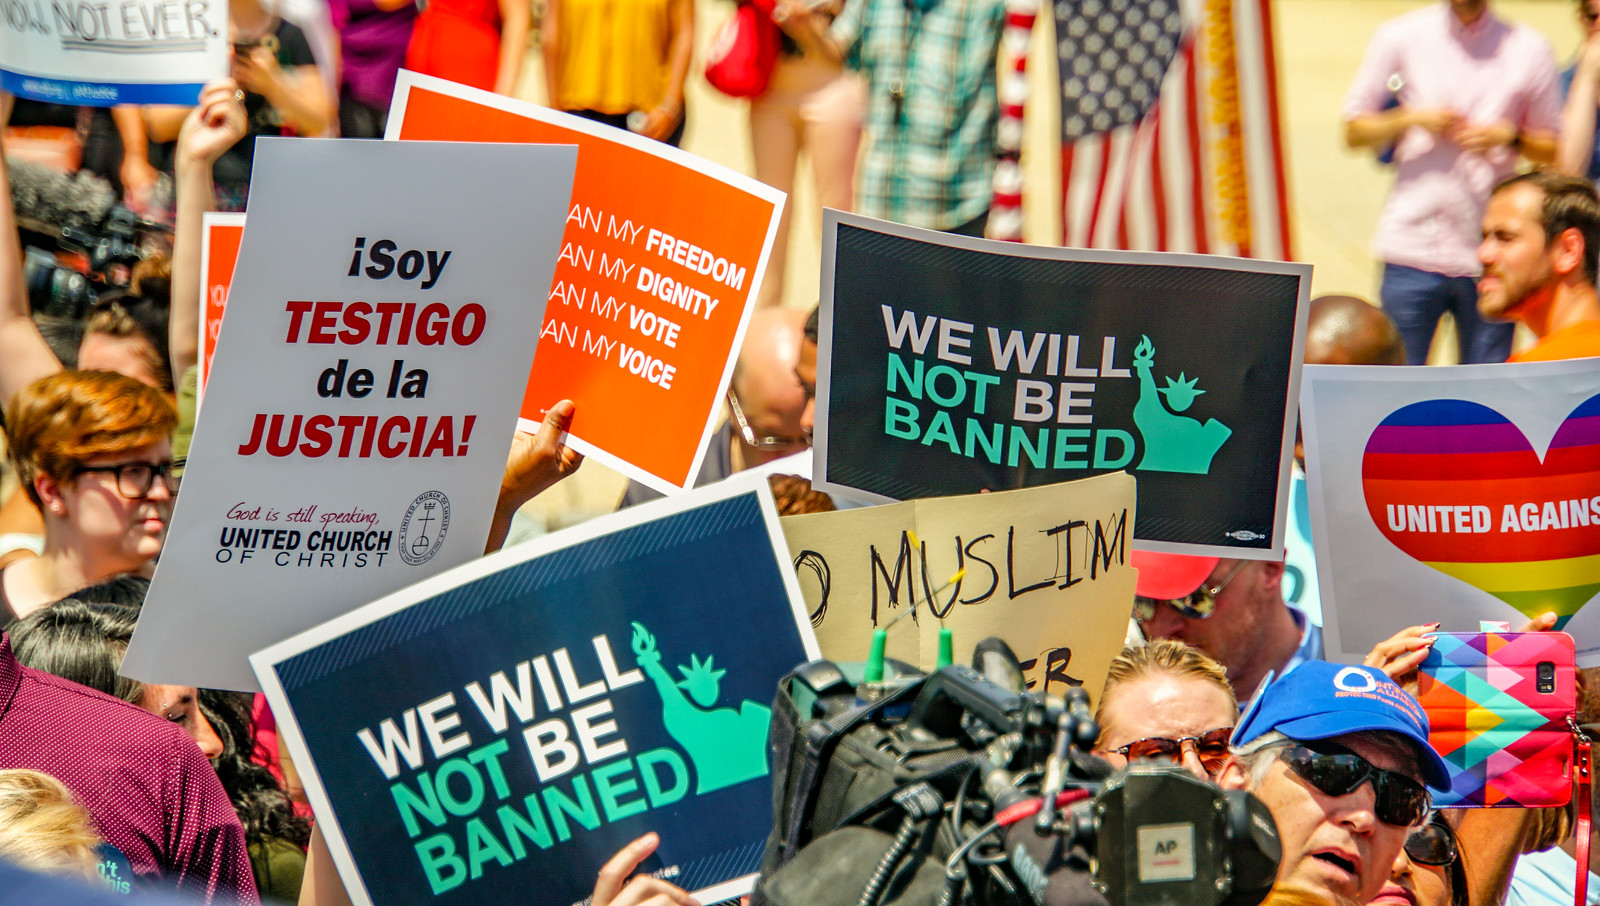 2018.06.26 Muslim Ban Decision Day, Supreme Court, Washington, DC USA 04040